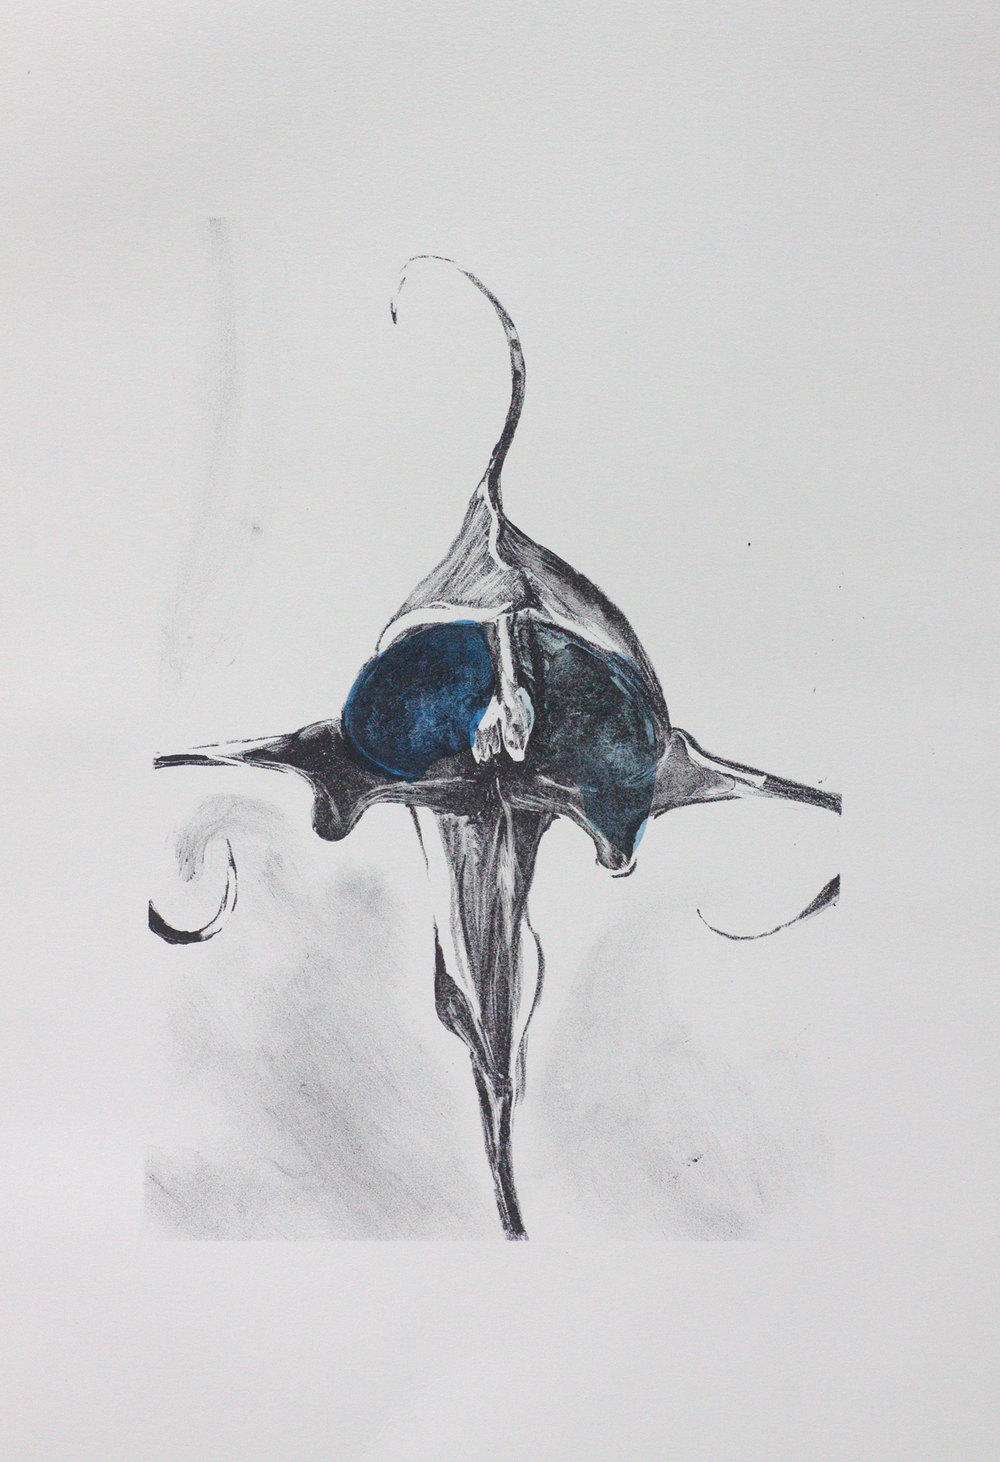 Orchidaceae - Granny Bonnet   Lithograph with indigo-stained chine colle.  35 x 25cm  $350 (UF)